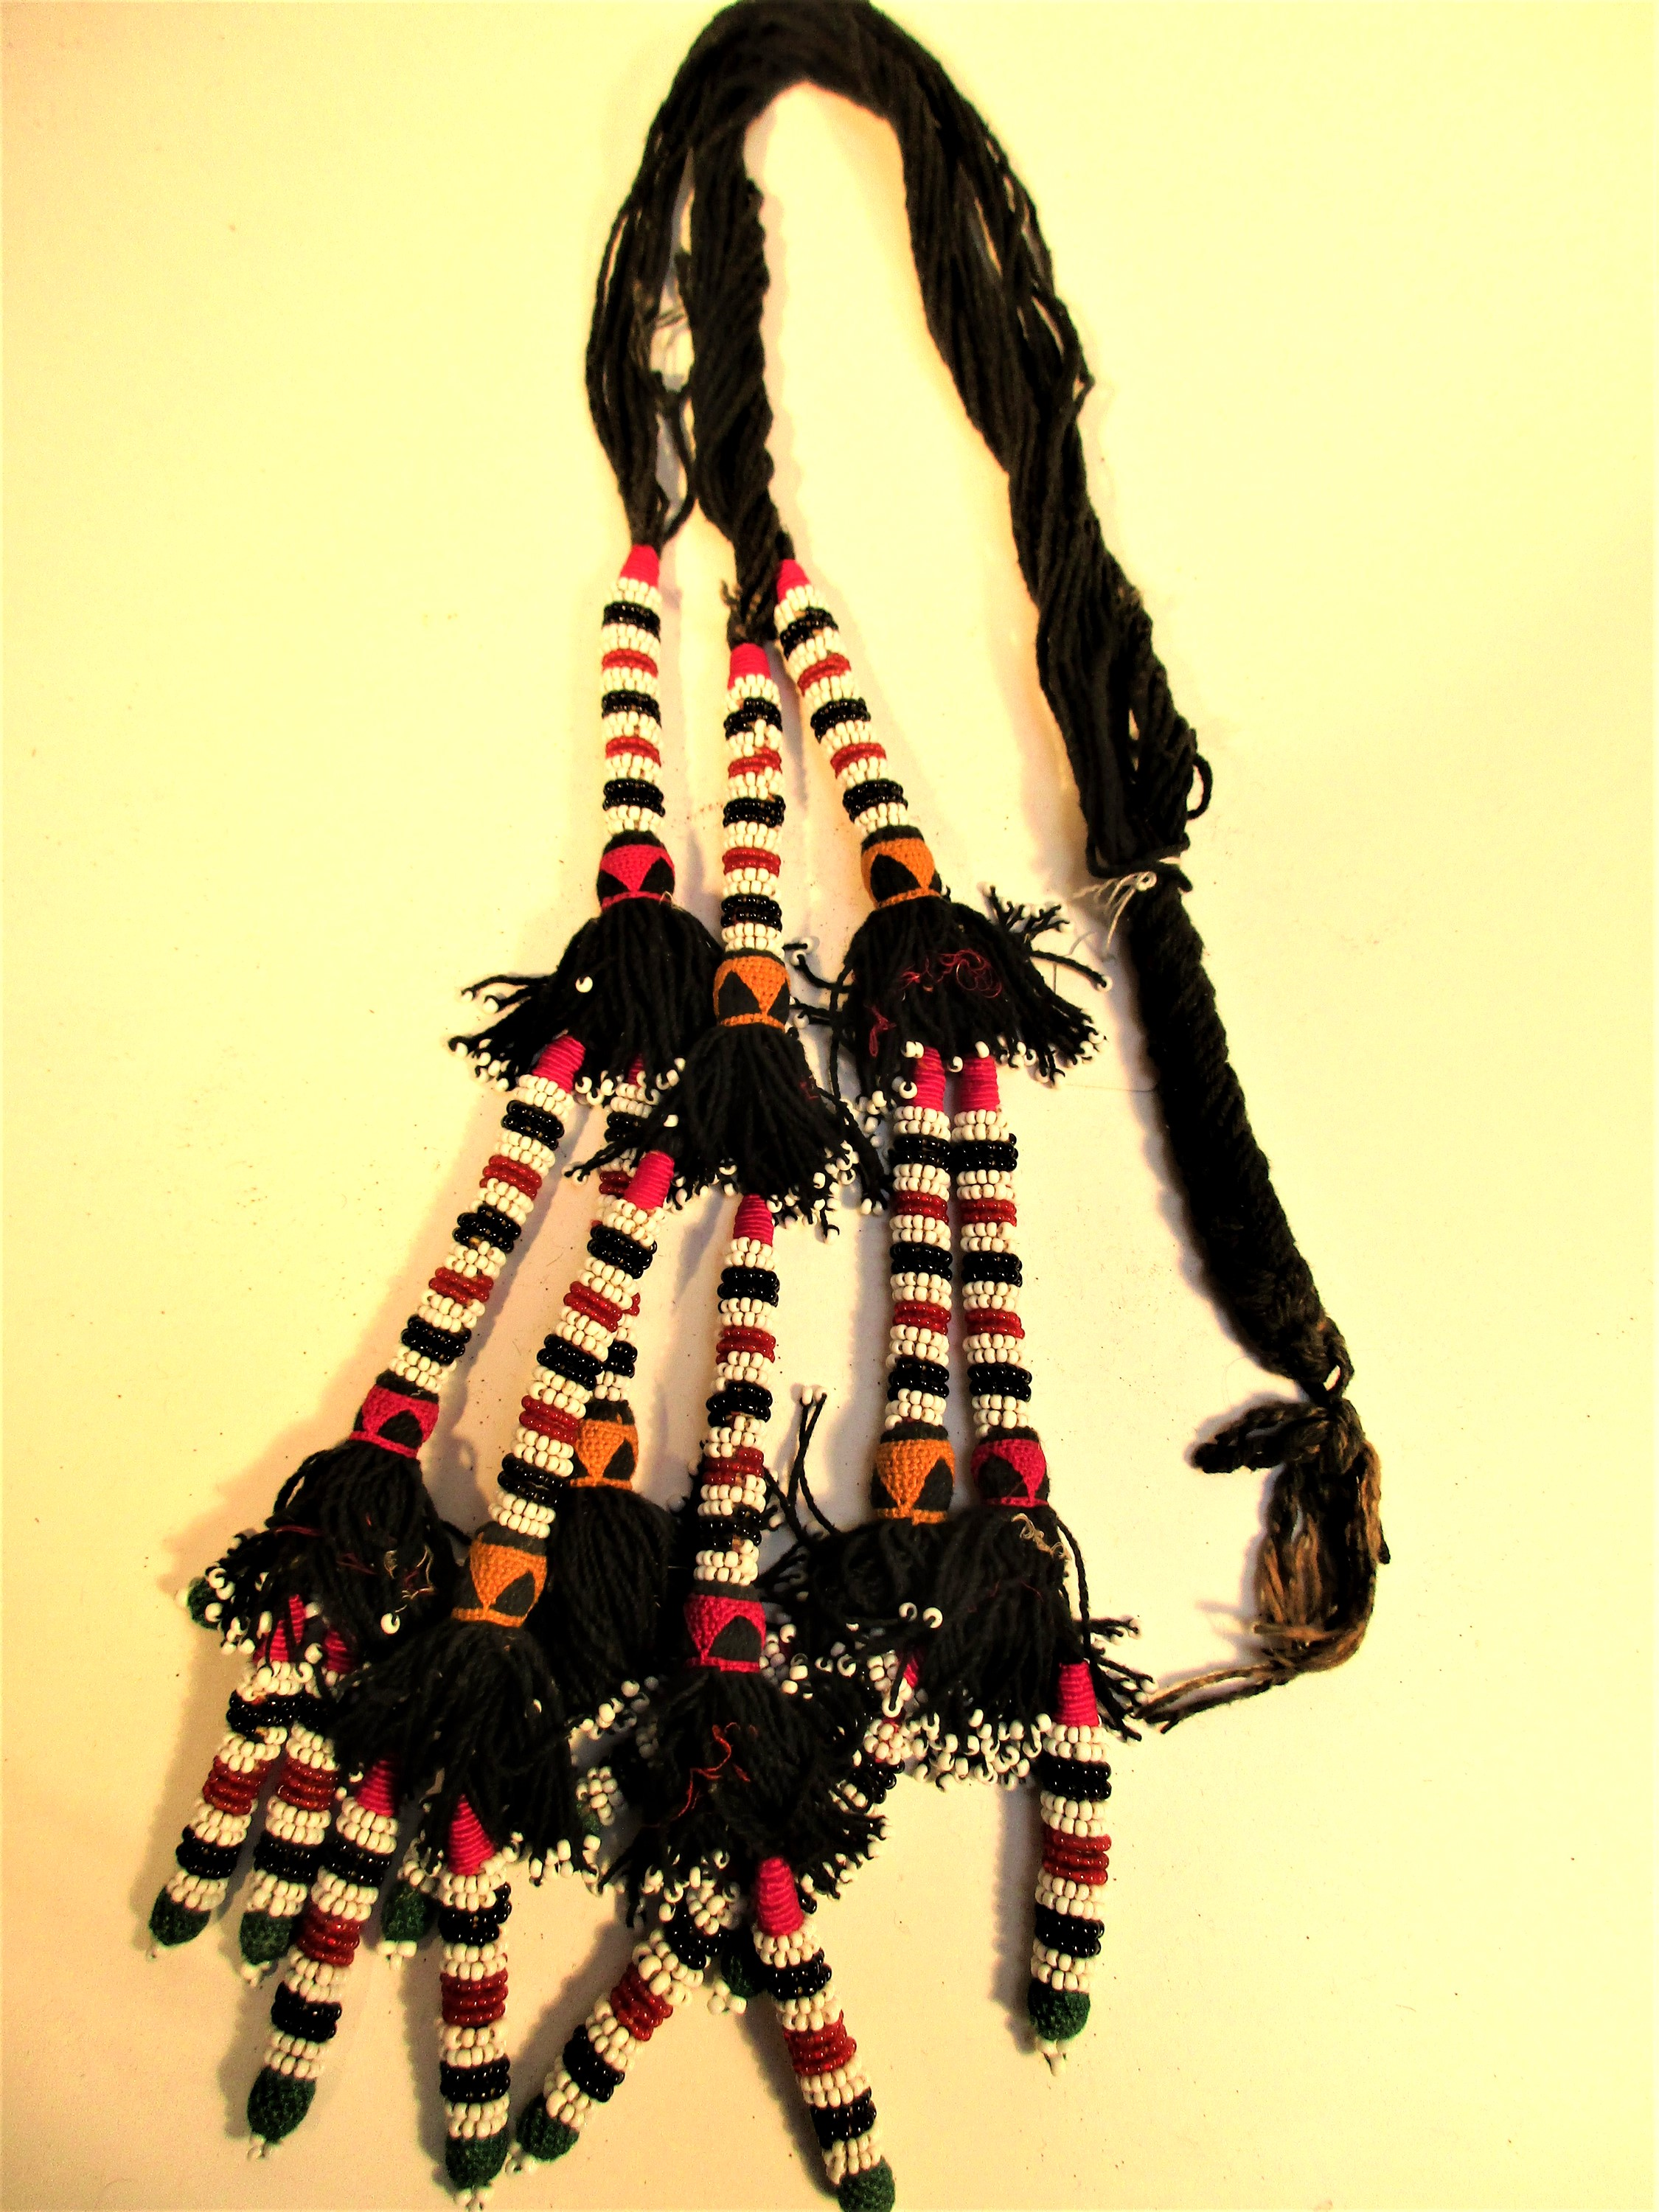 Turkoman or Uzbek hair braid hair extension. This would be used by a teenage girl or young woman